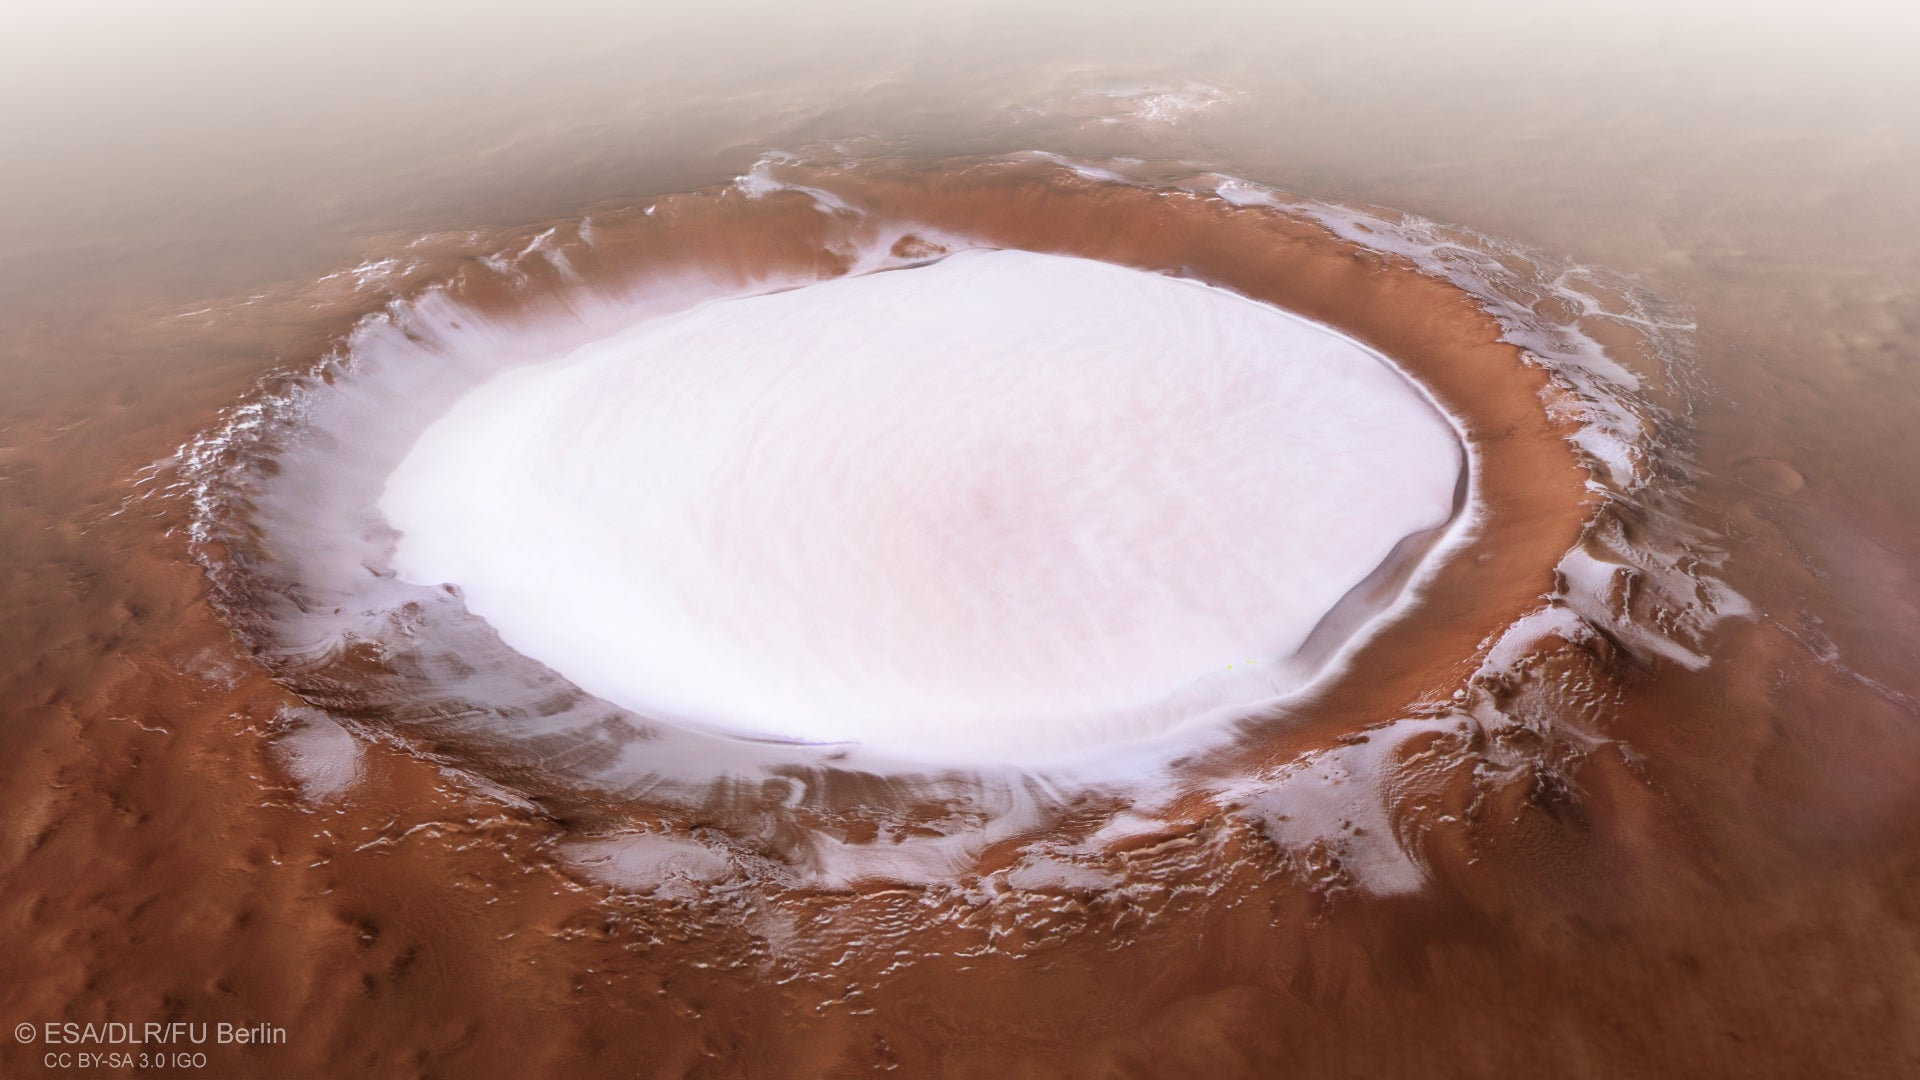 Who Wants To Go Ice Skating Across This Wintry Martian Crater?